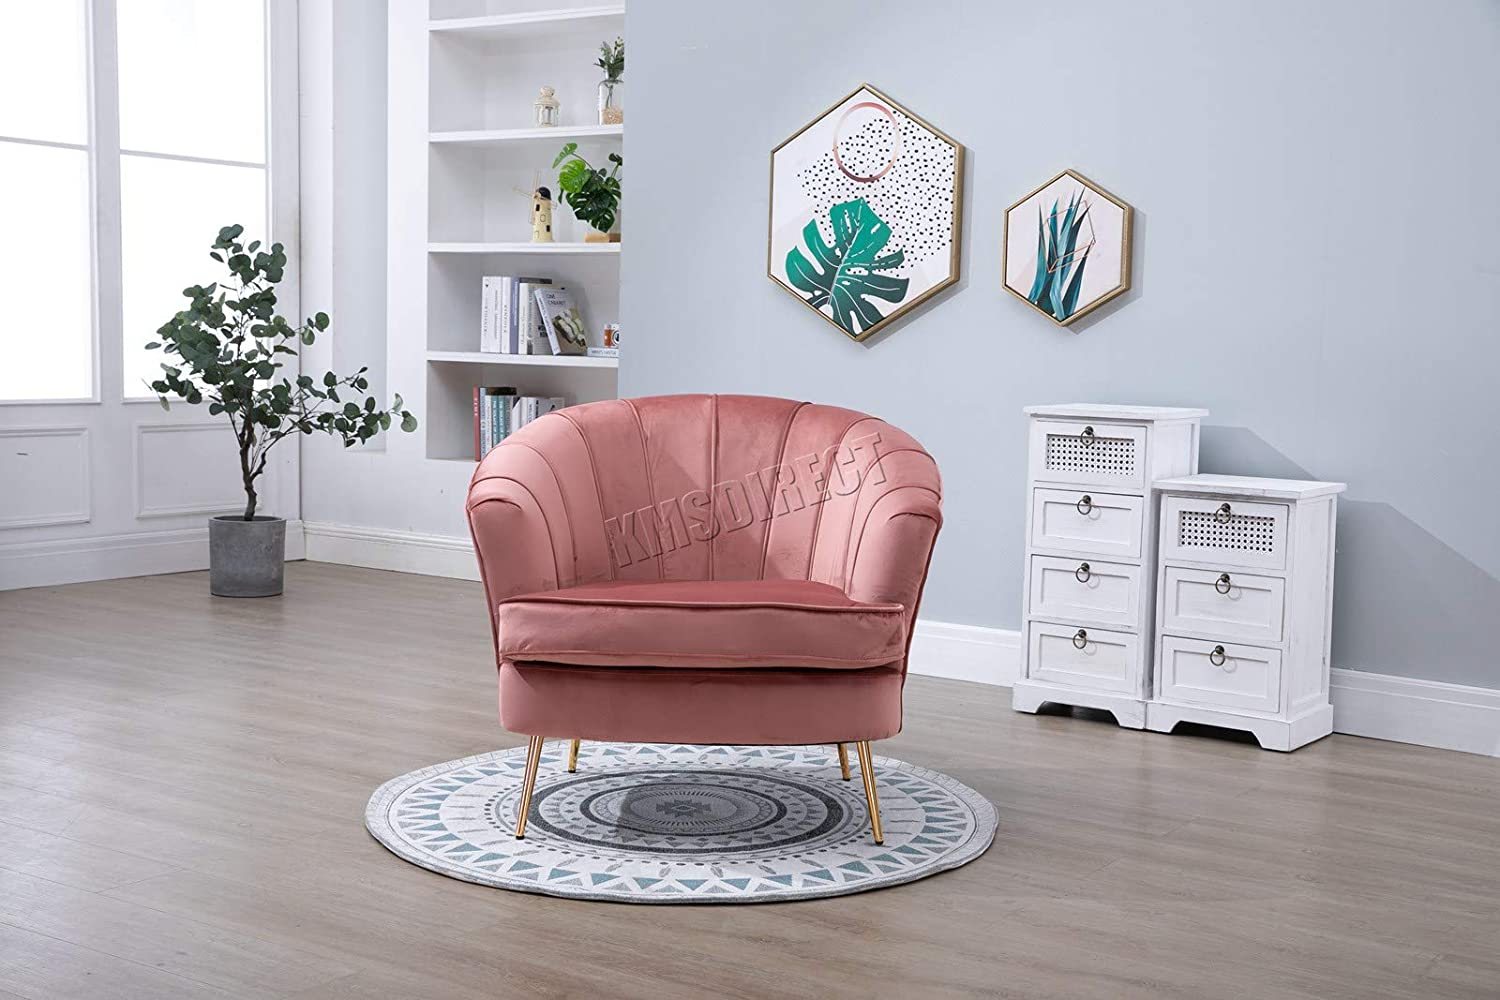 WestWood Armchair Sofa 1 Seater Settee Couch Upholstered Seat Velvet Fabric Tub Chair Home Furniture 8105 Pink